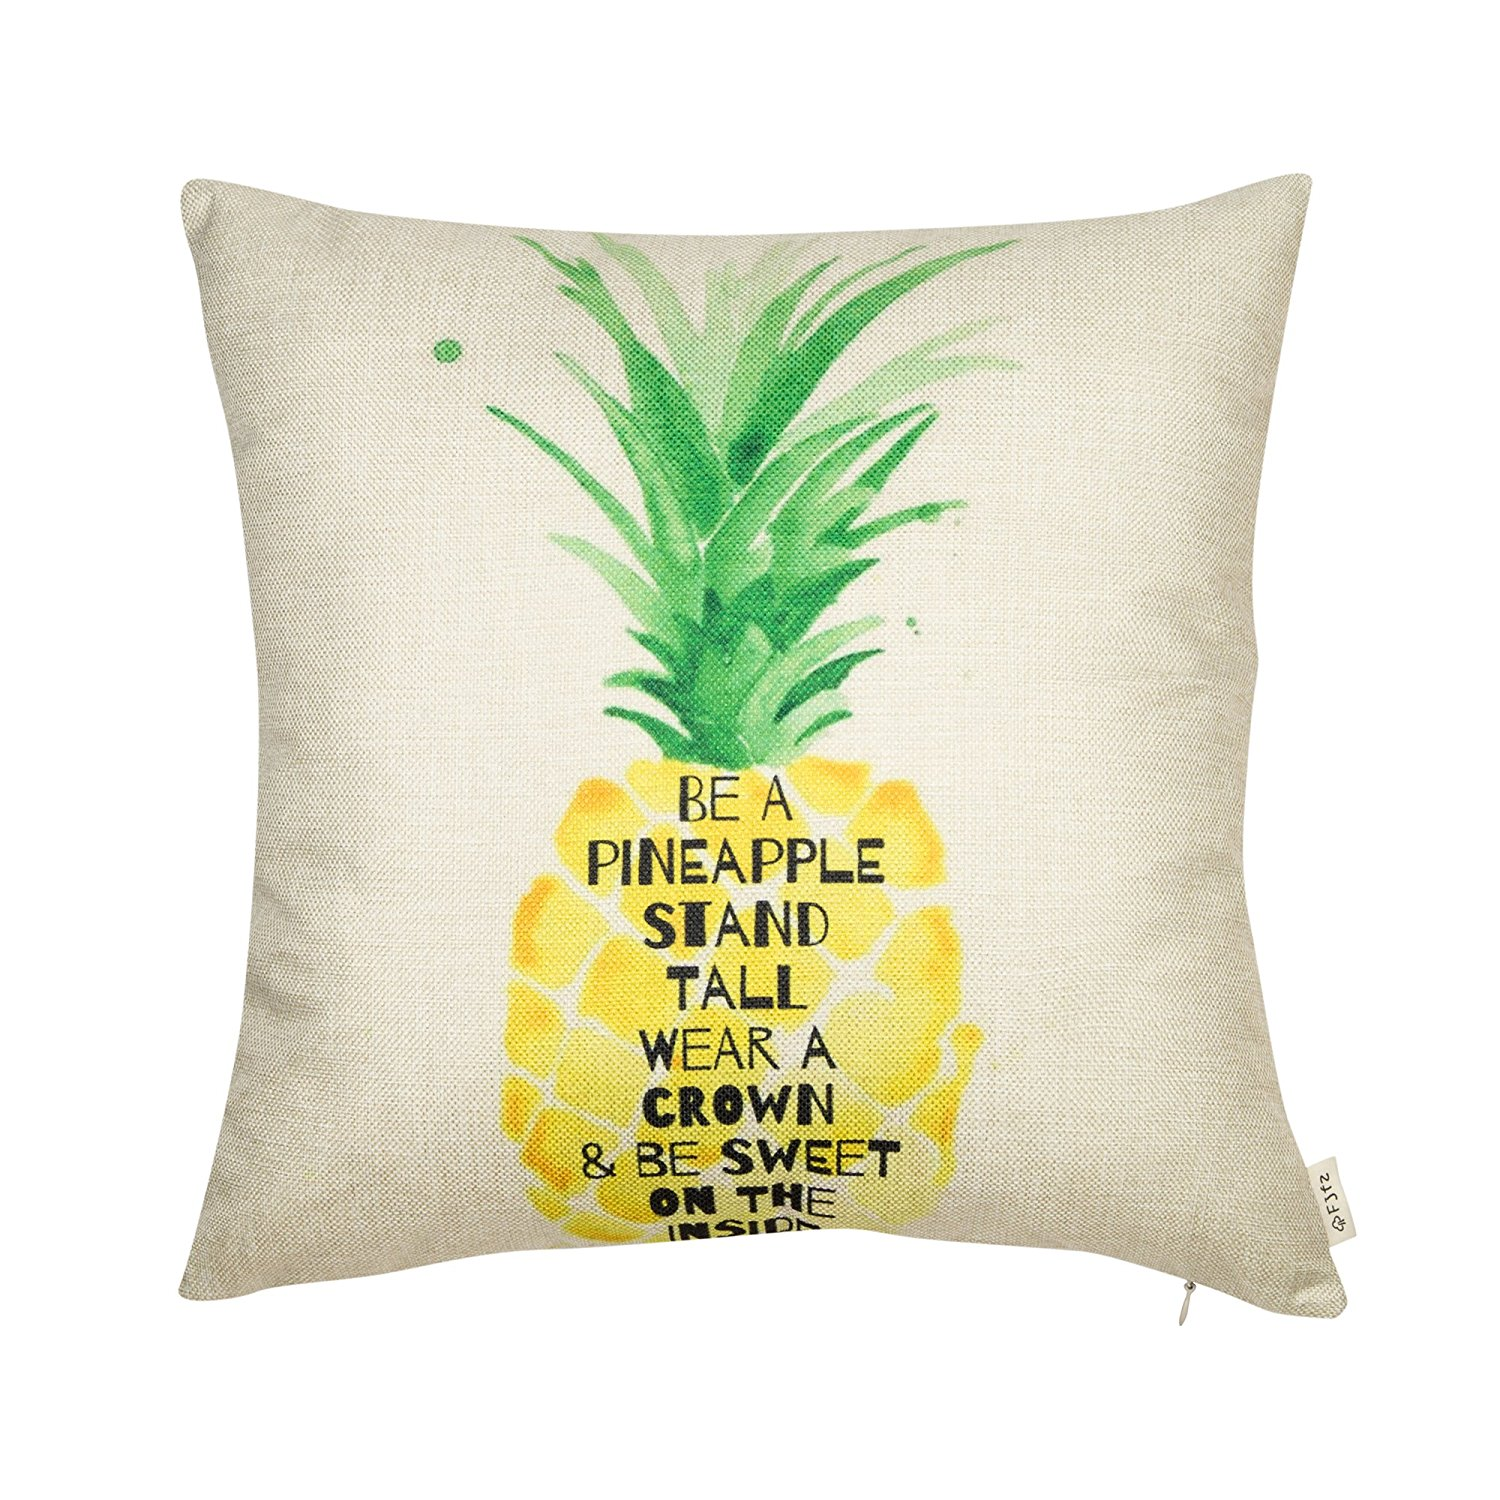 I love the saying on this pineapple decor pillow!